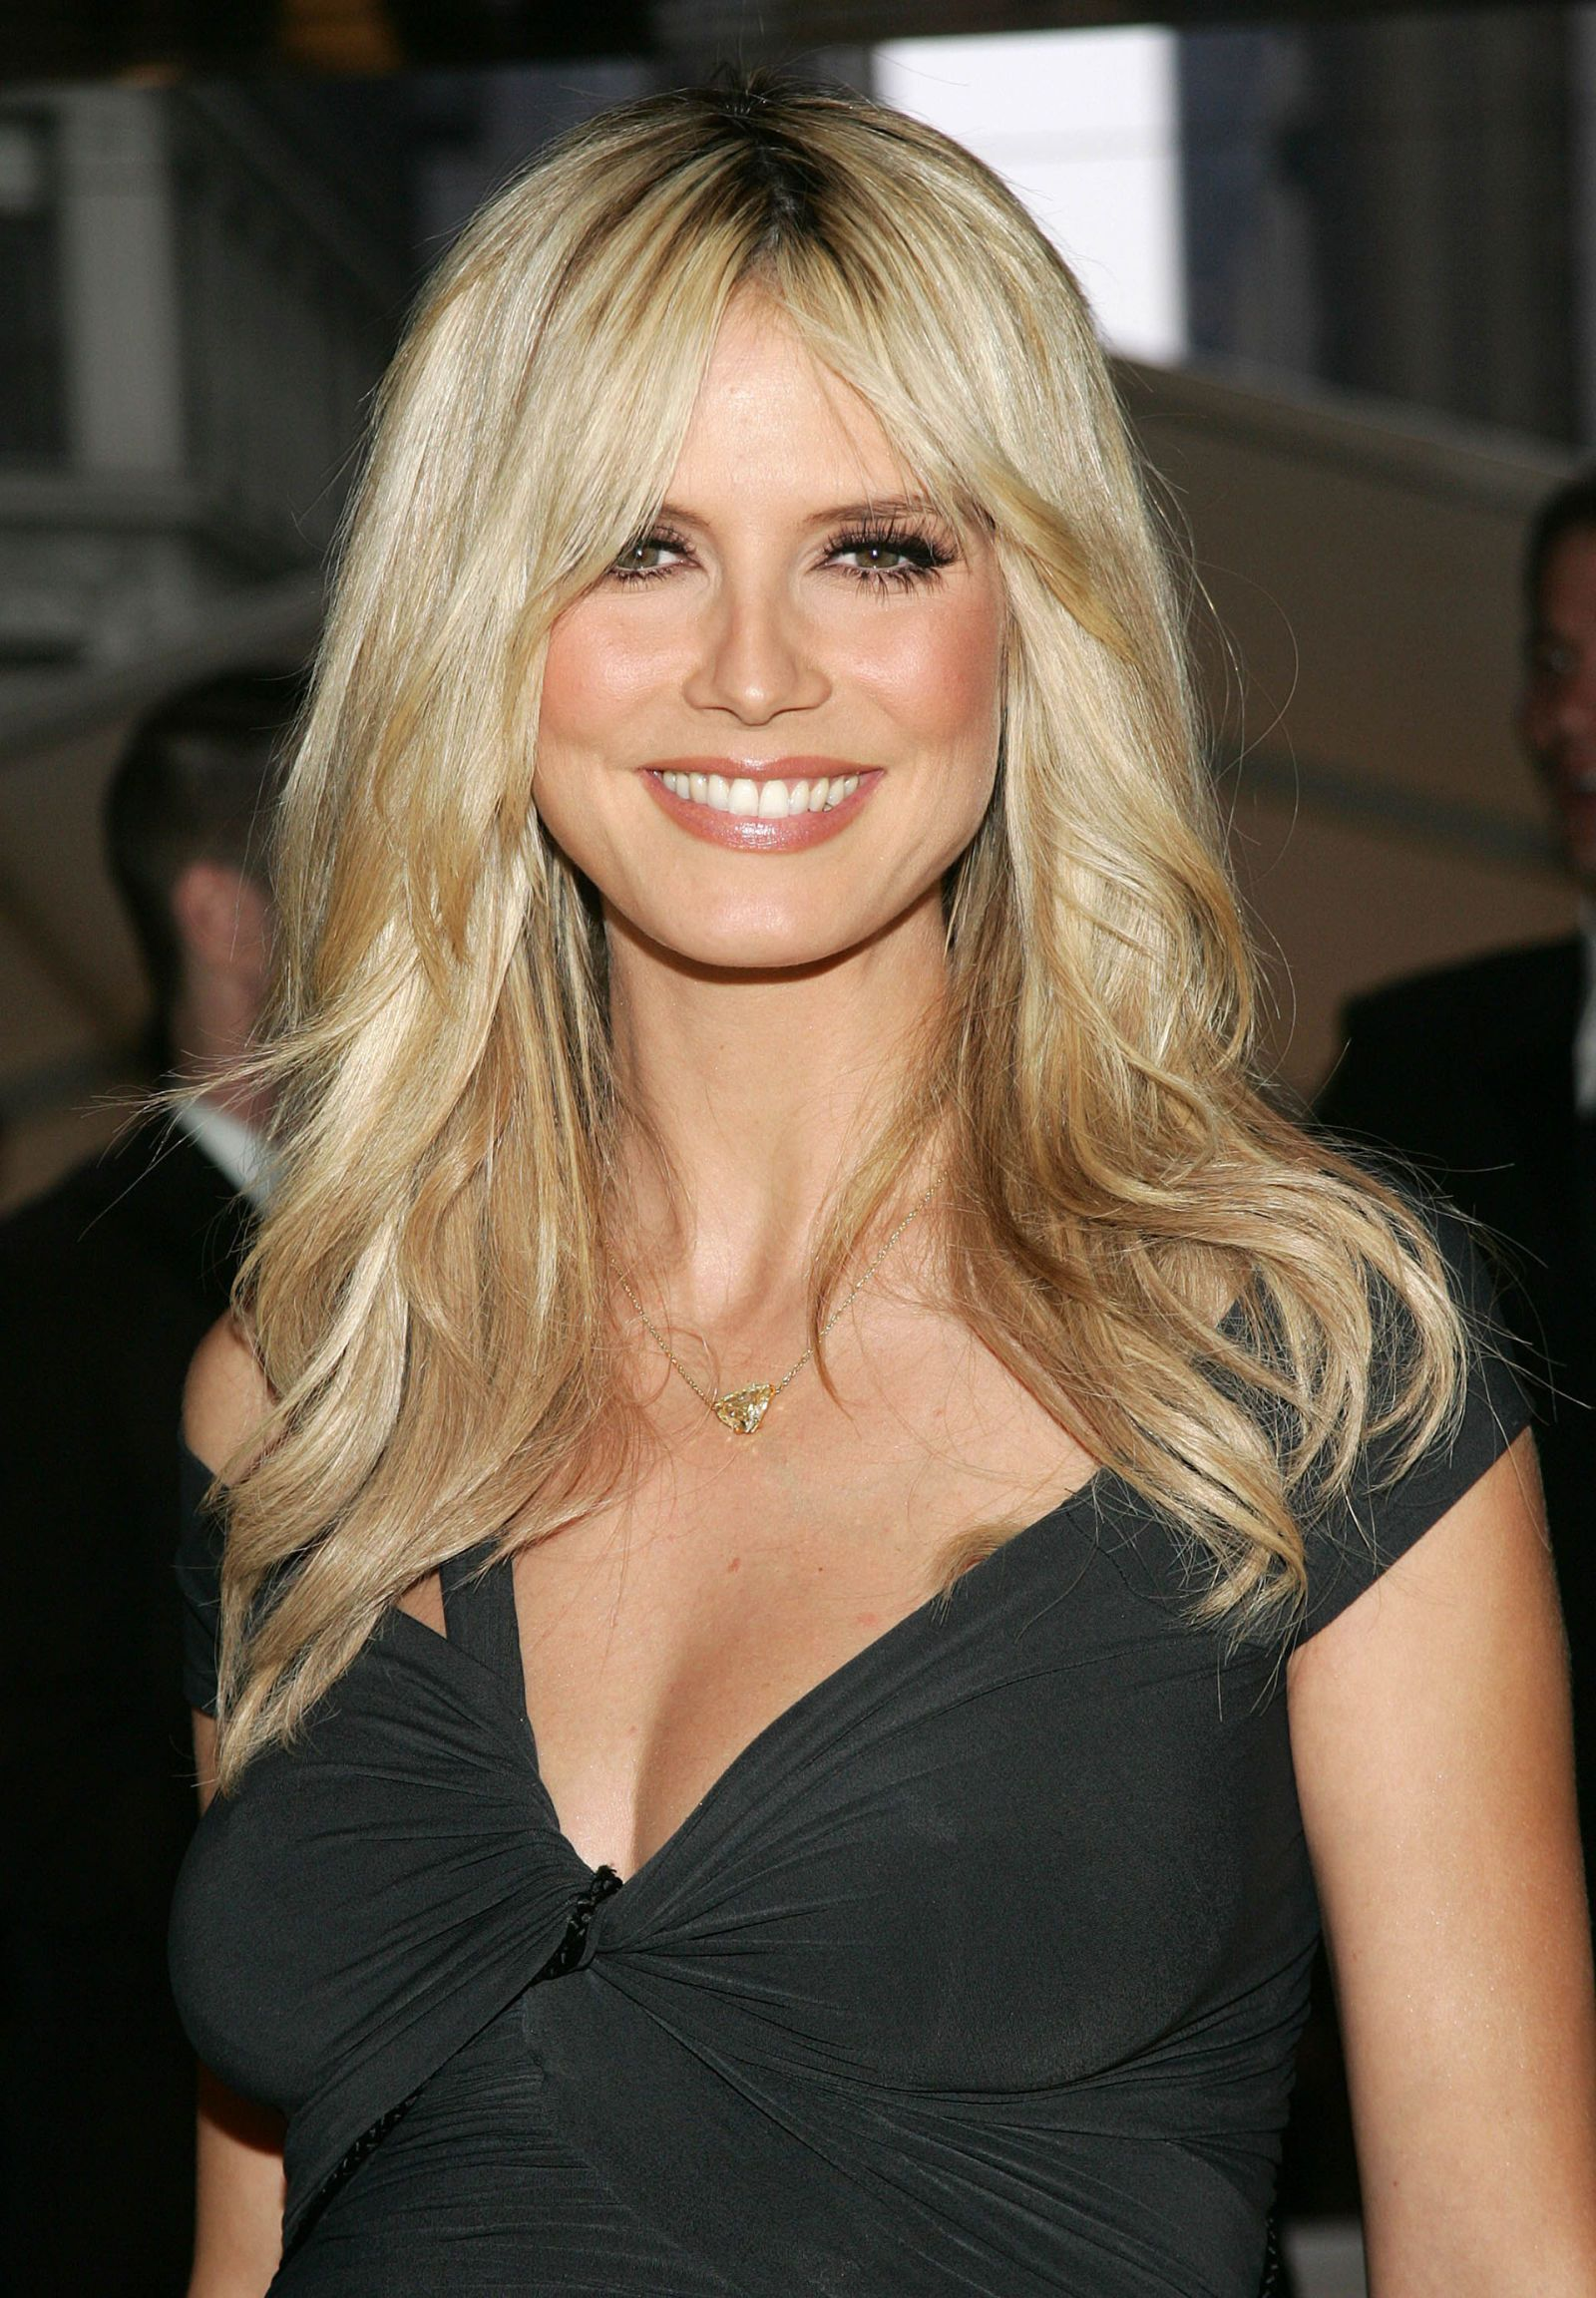 Heidi Klum Hair And Makeup Heidi Klum Beauty Looks